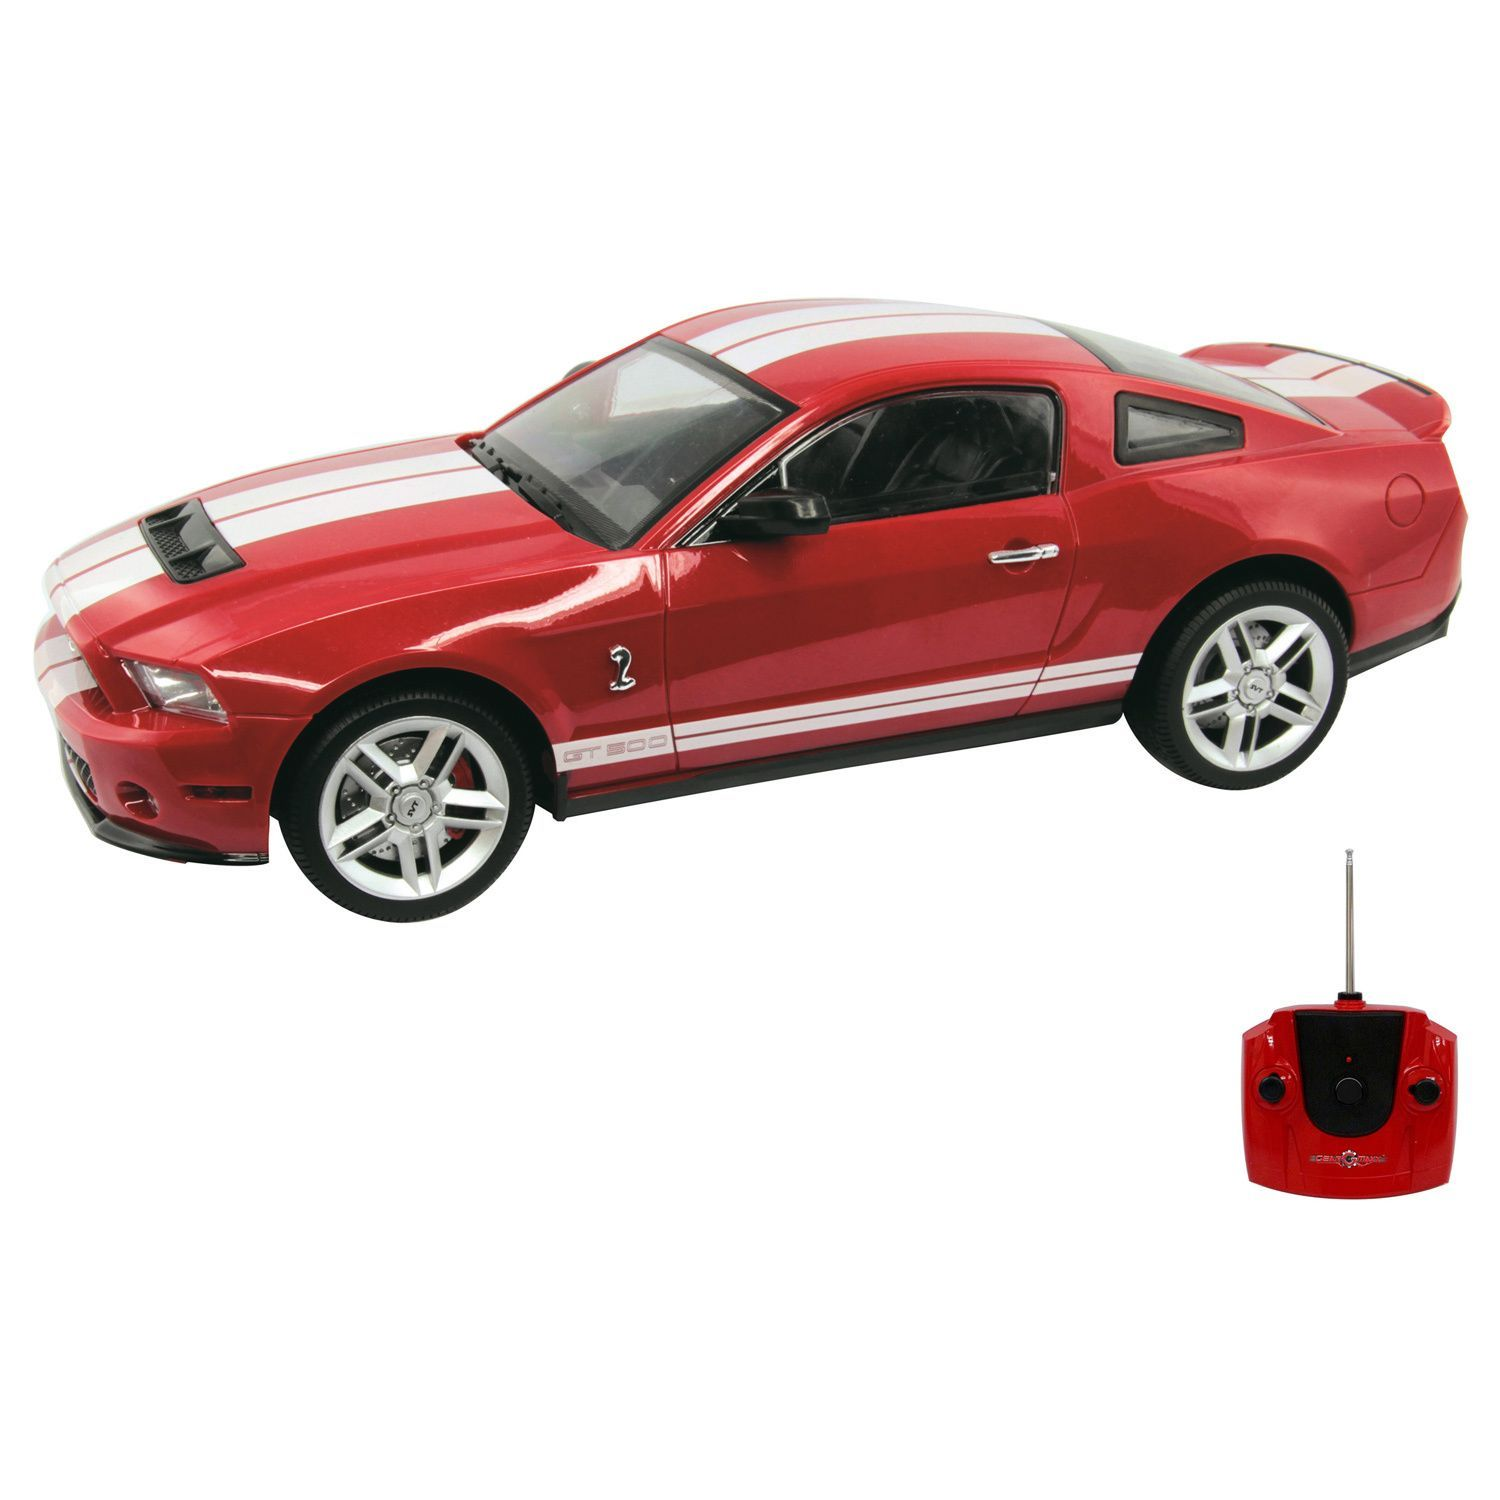 Kidz tech 116 scale rc ford shelby gt500 remote control car